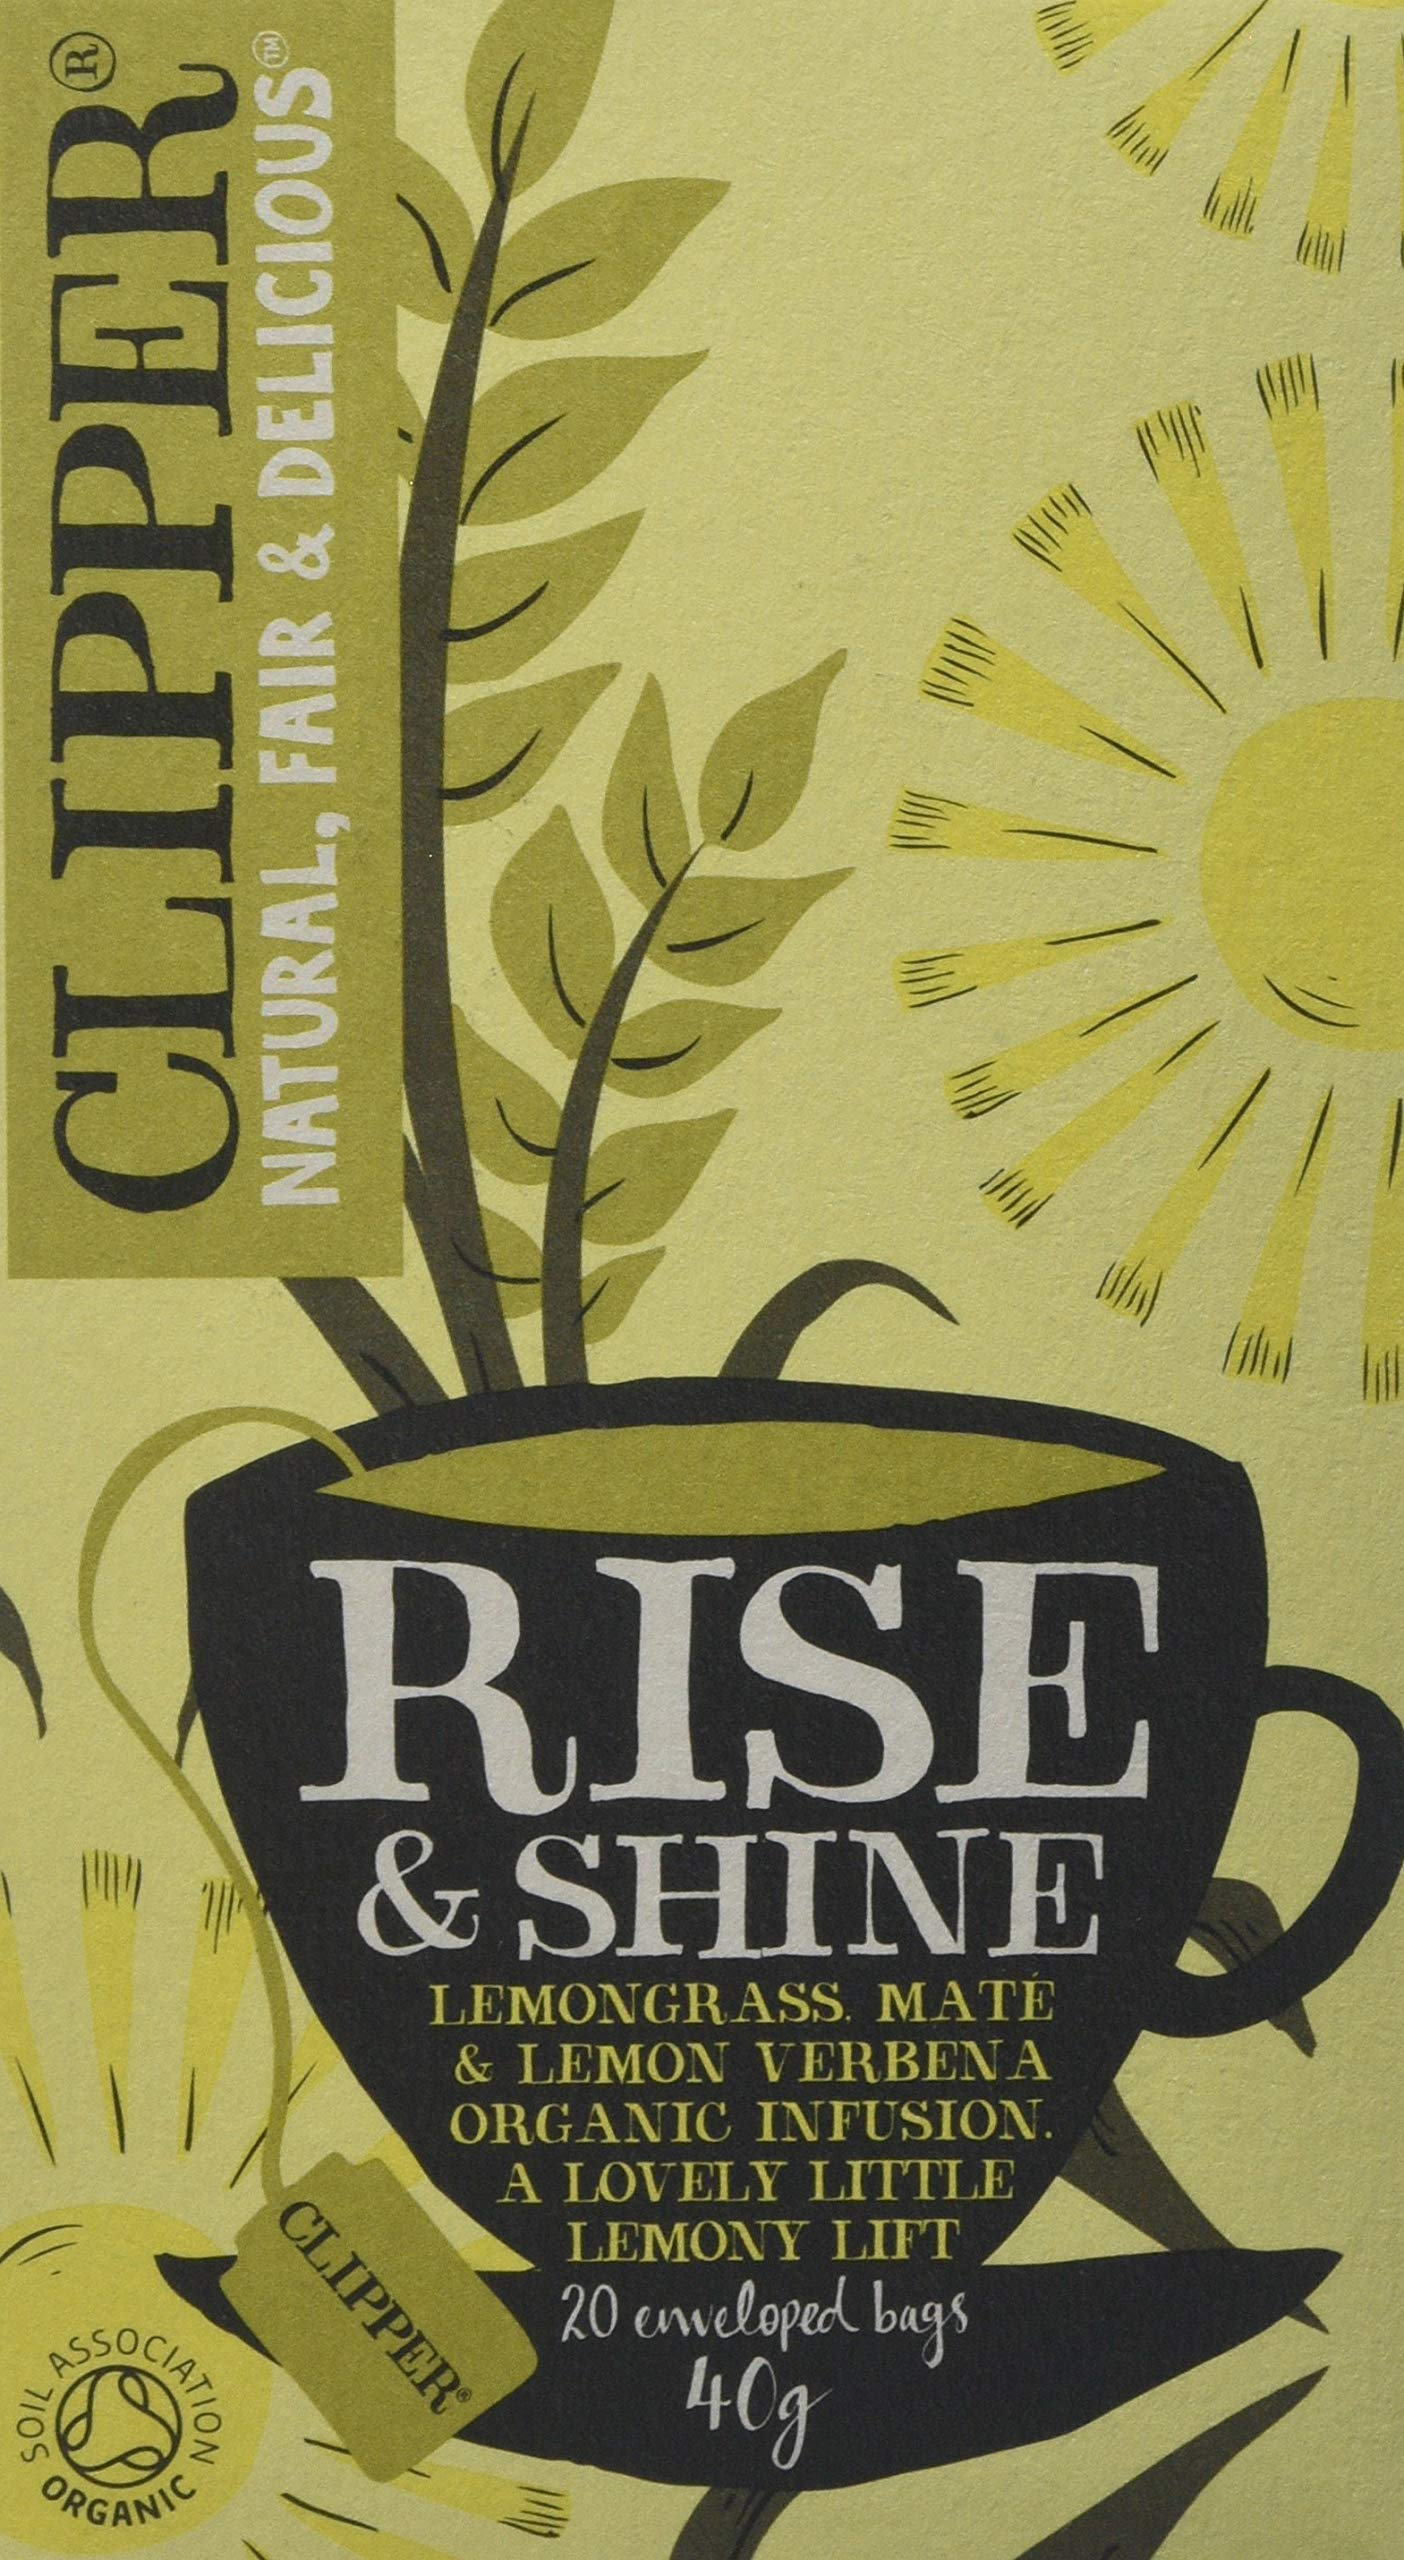 Clipper organic rise and shine tea bundle (soil association) (infusions) (6 packs of 20 bags) (120 bags) (a vegetal tea with aromas of lemongrass) (brews in 3-5 minutes)